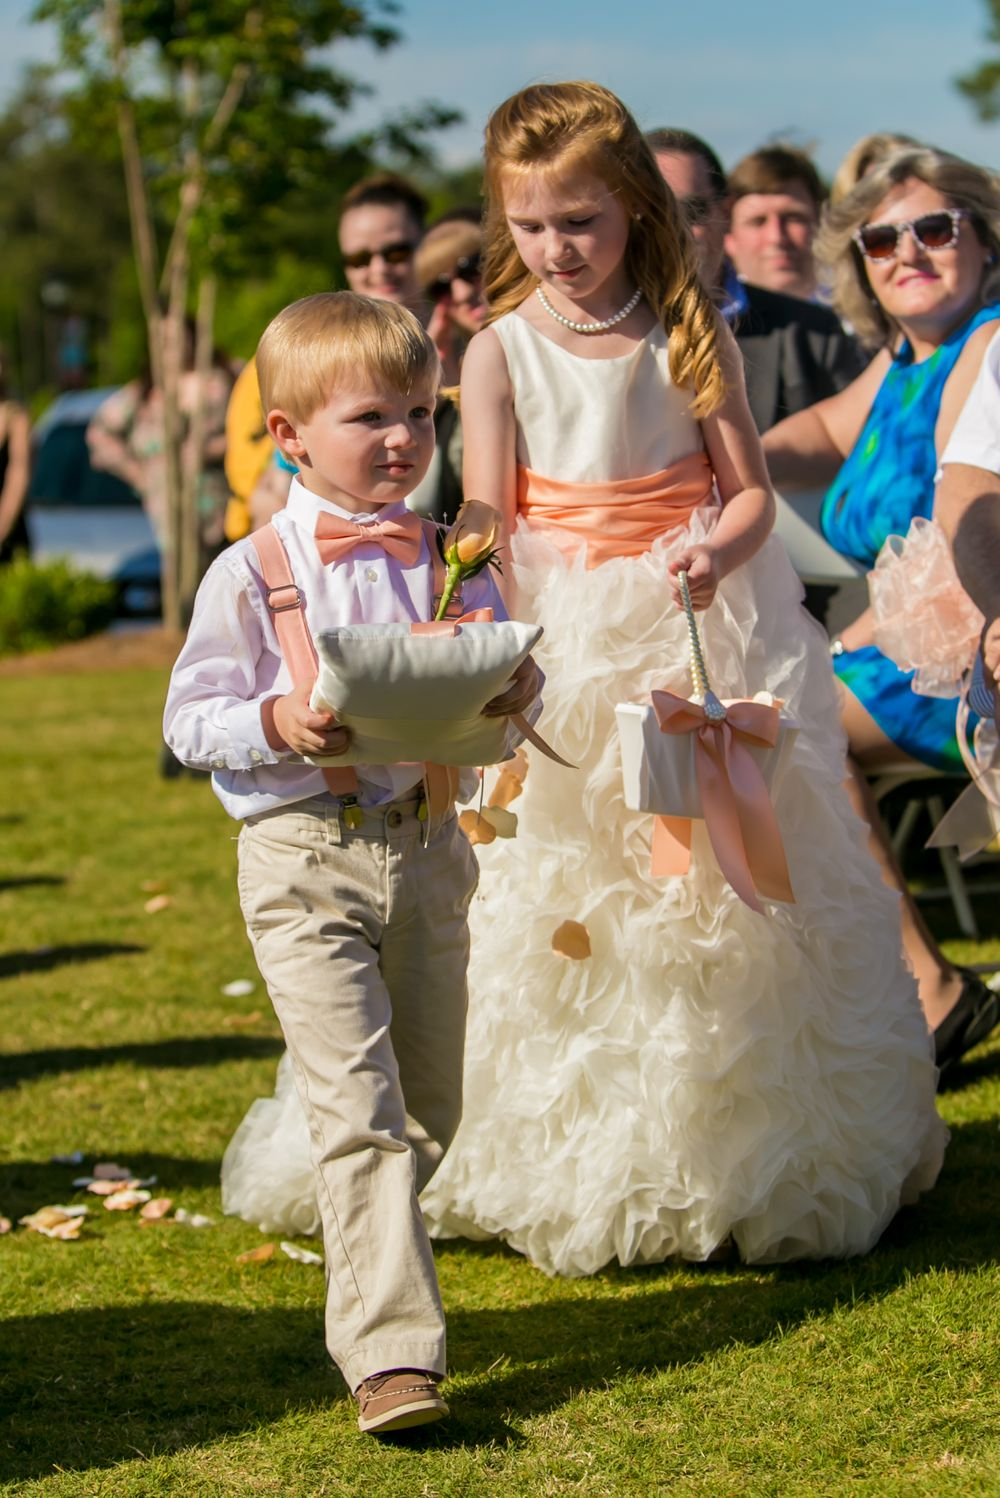 The ring bearer & flower girl walk down the aisle during a wedding ceremony at Cobblestone Golf Club in Blythewood, SC